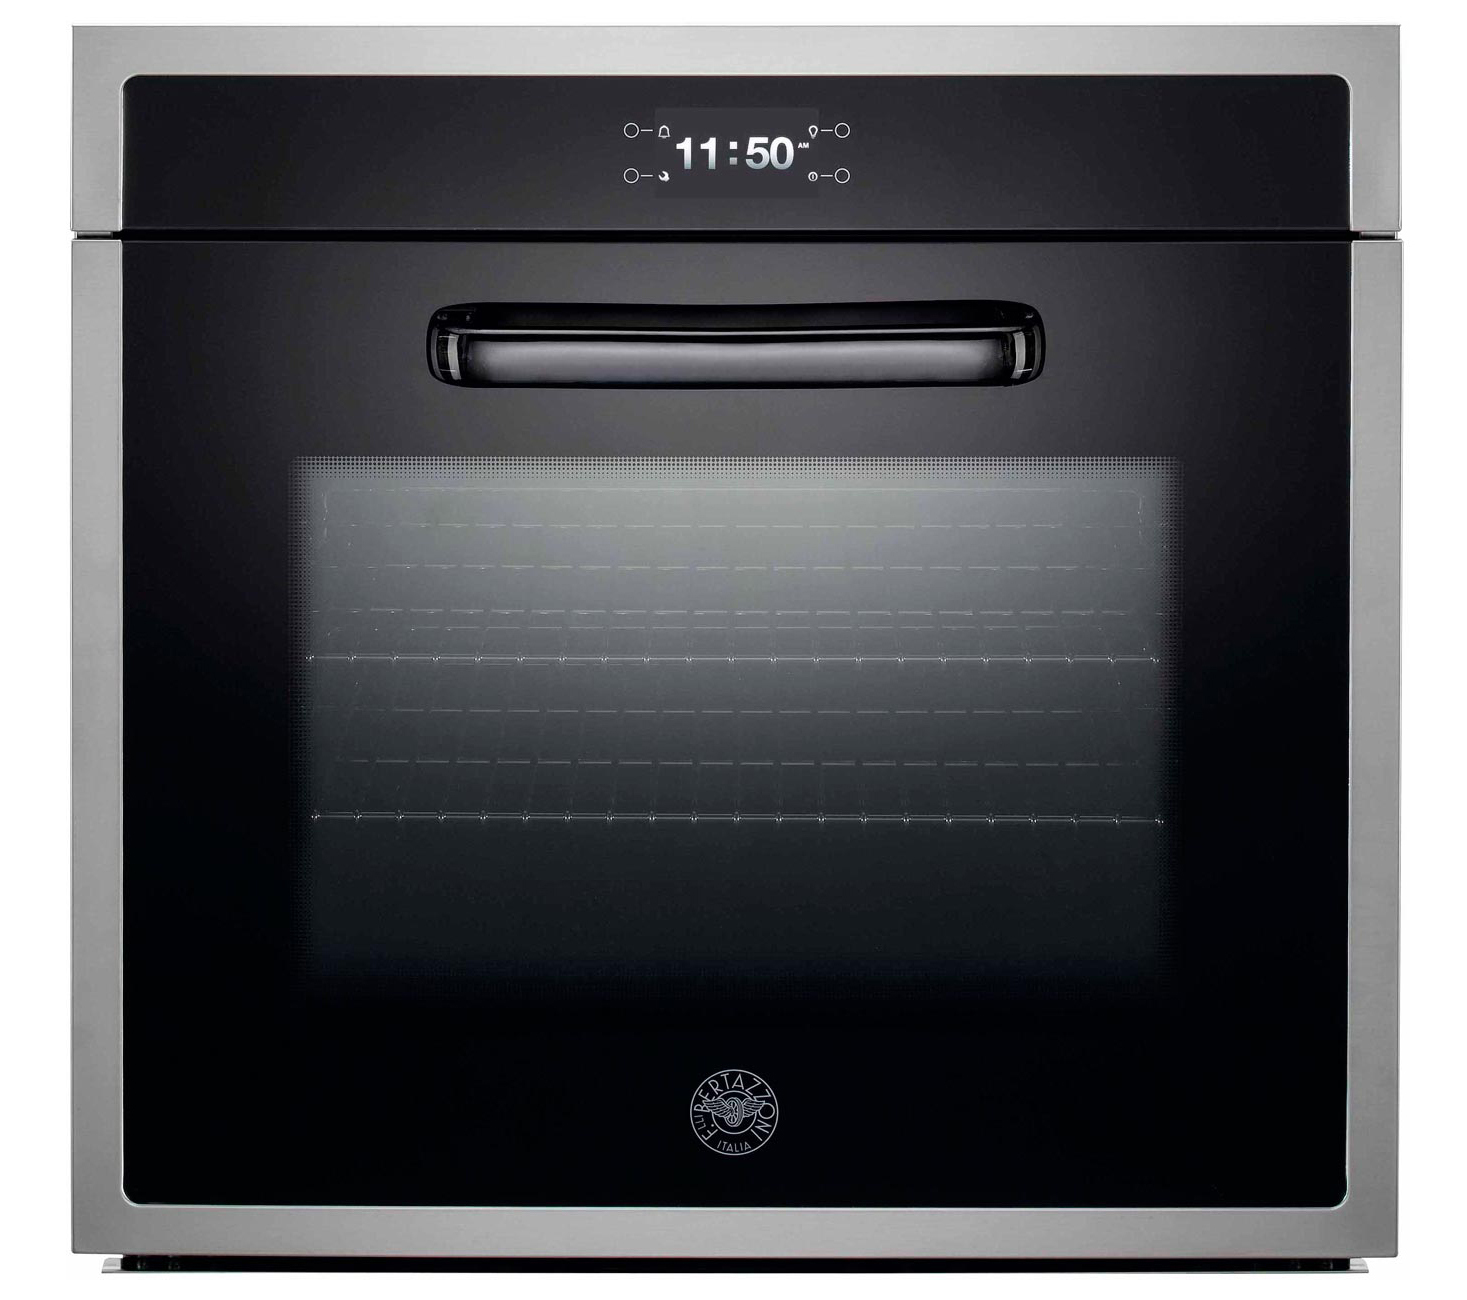 The 30-inch oven from Bertazzoni's Design Series